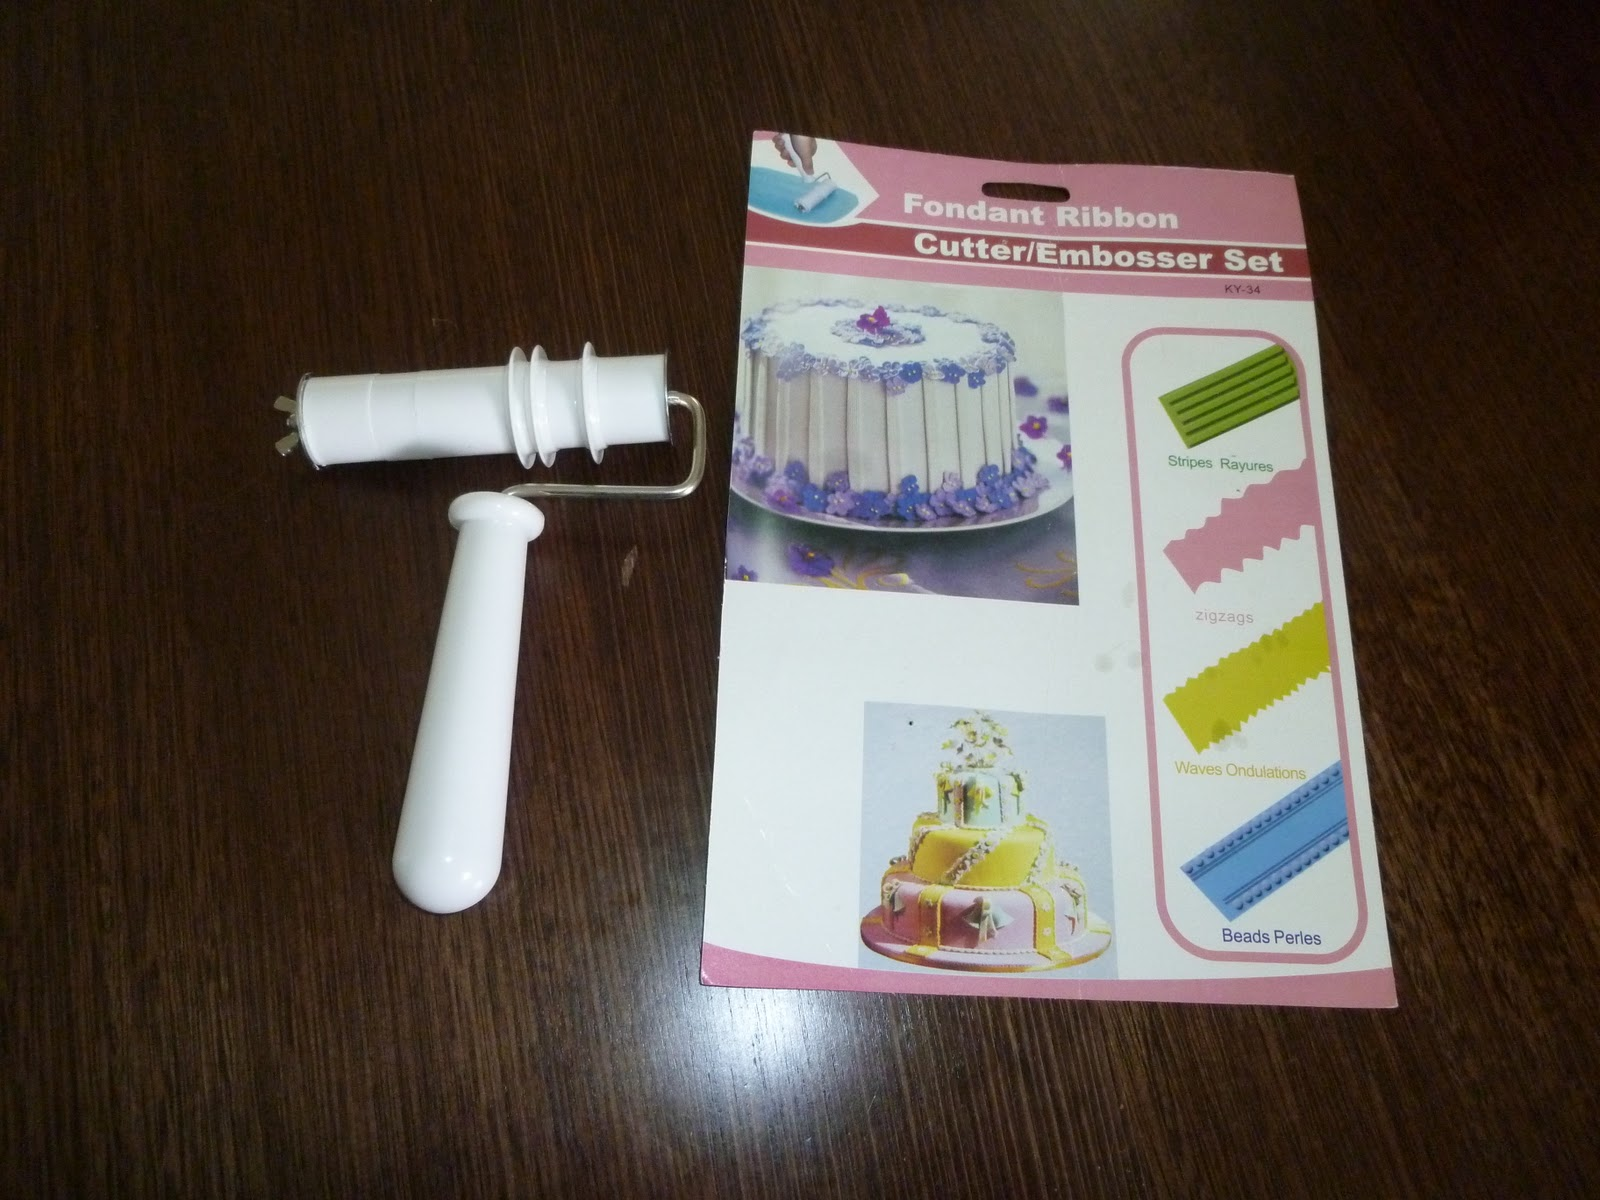 Sweetie Darling How To Cover A Cake With Horizontal Fondant